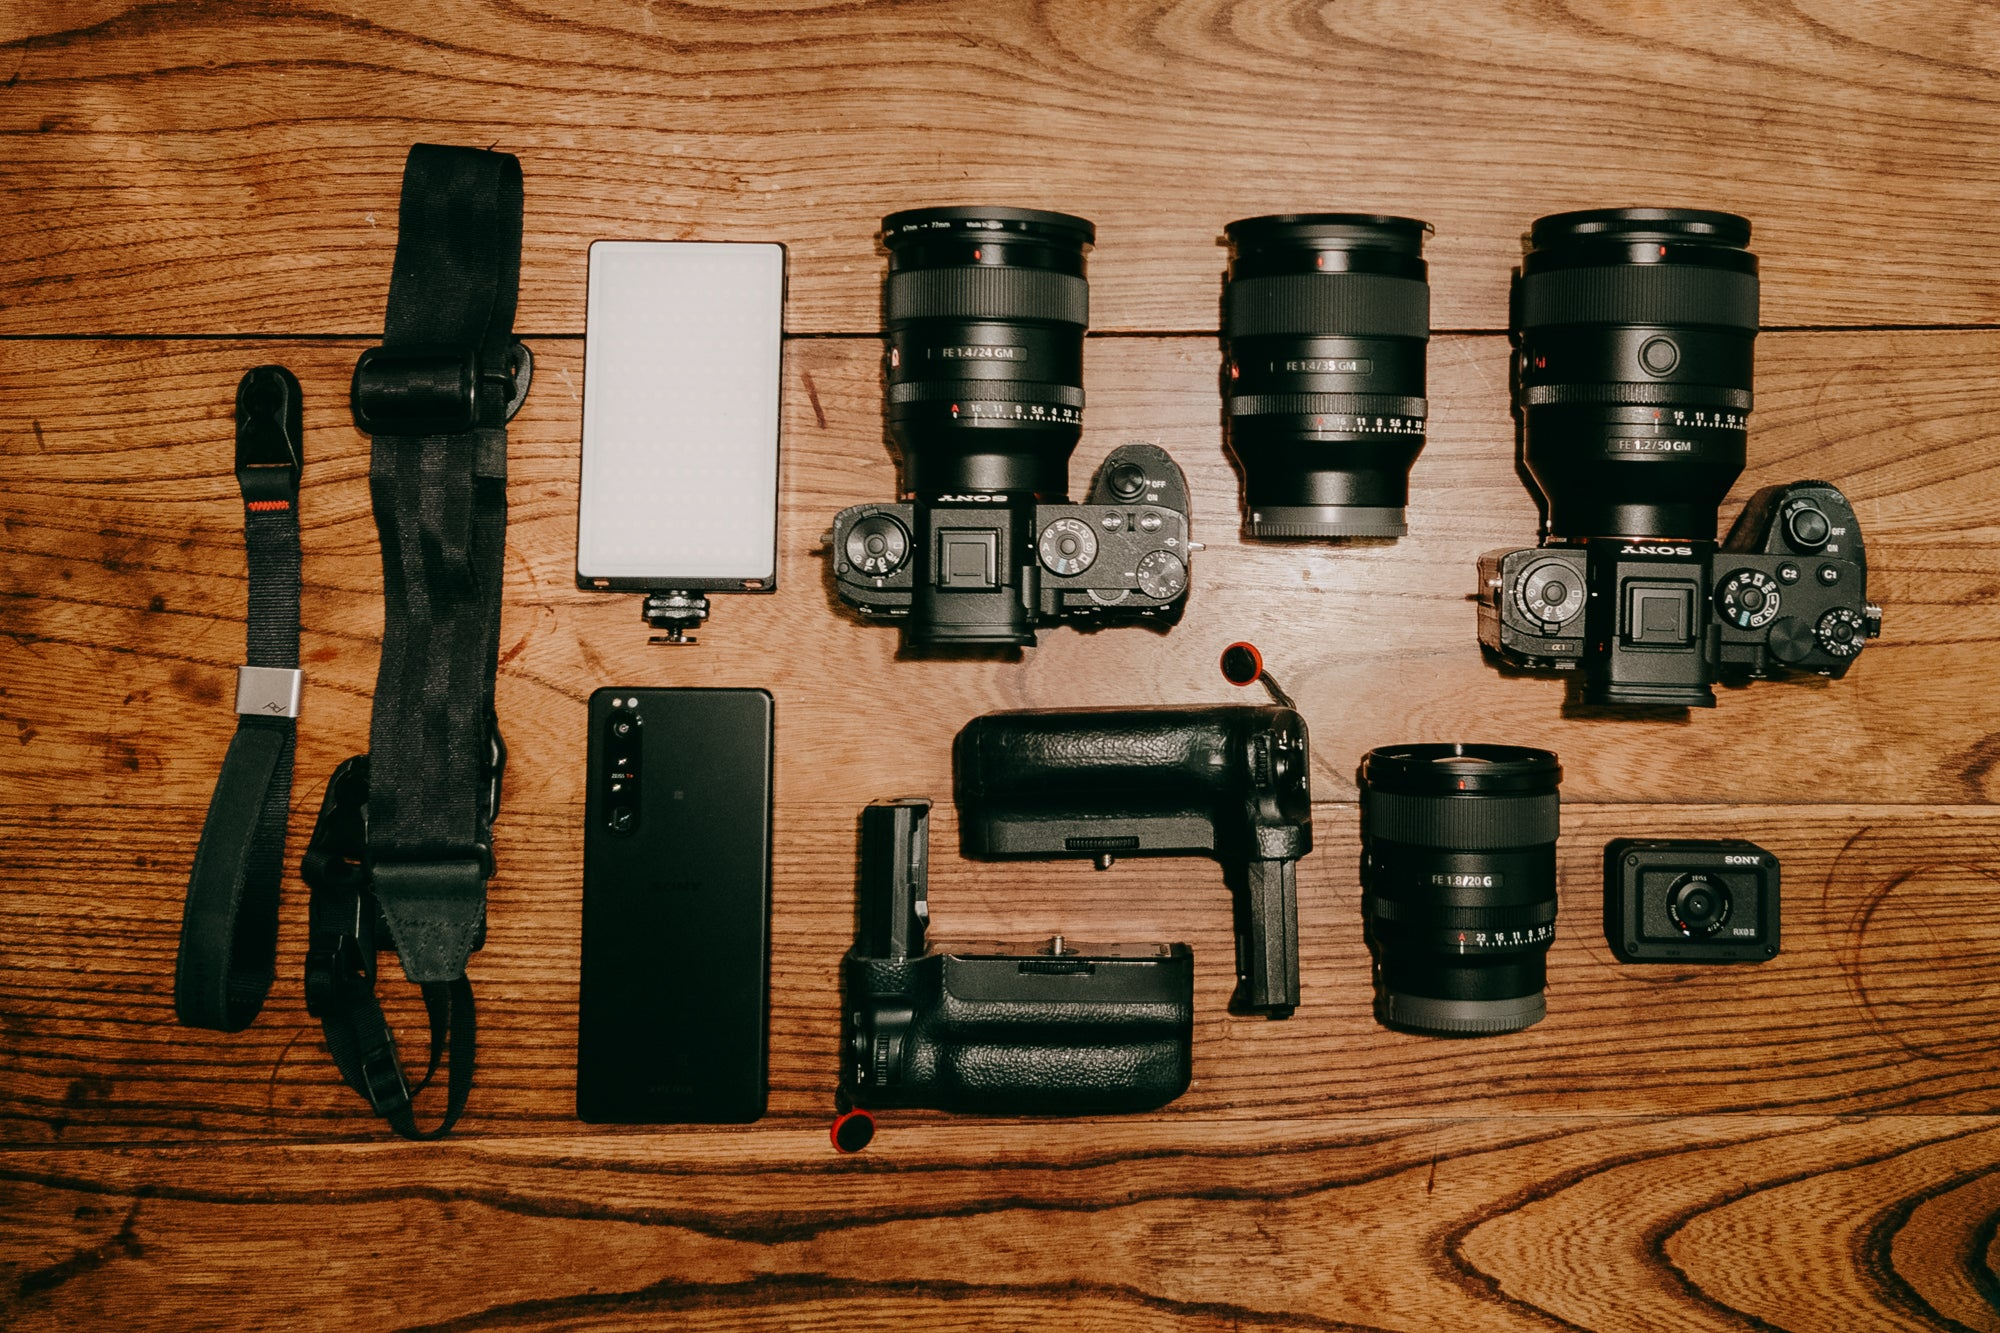 Ippei and Janine's Sony kit for photography includes the Sony Alpha 1, Sony Alpha 9, Sony Xperia 1 III + more